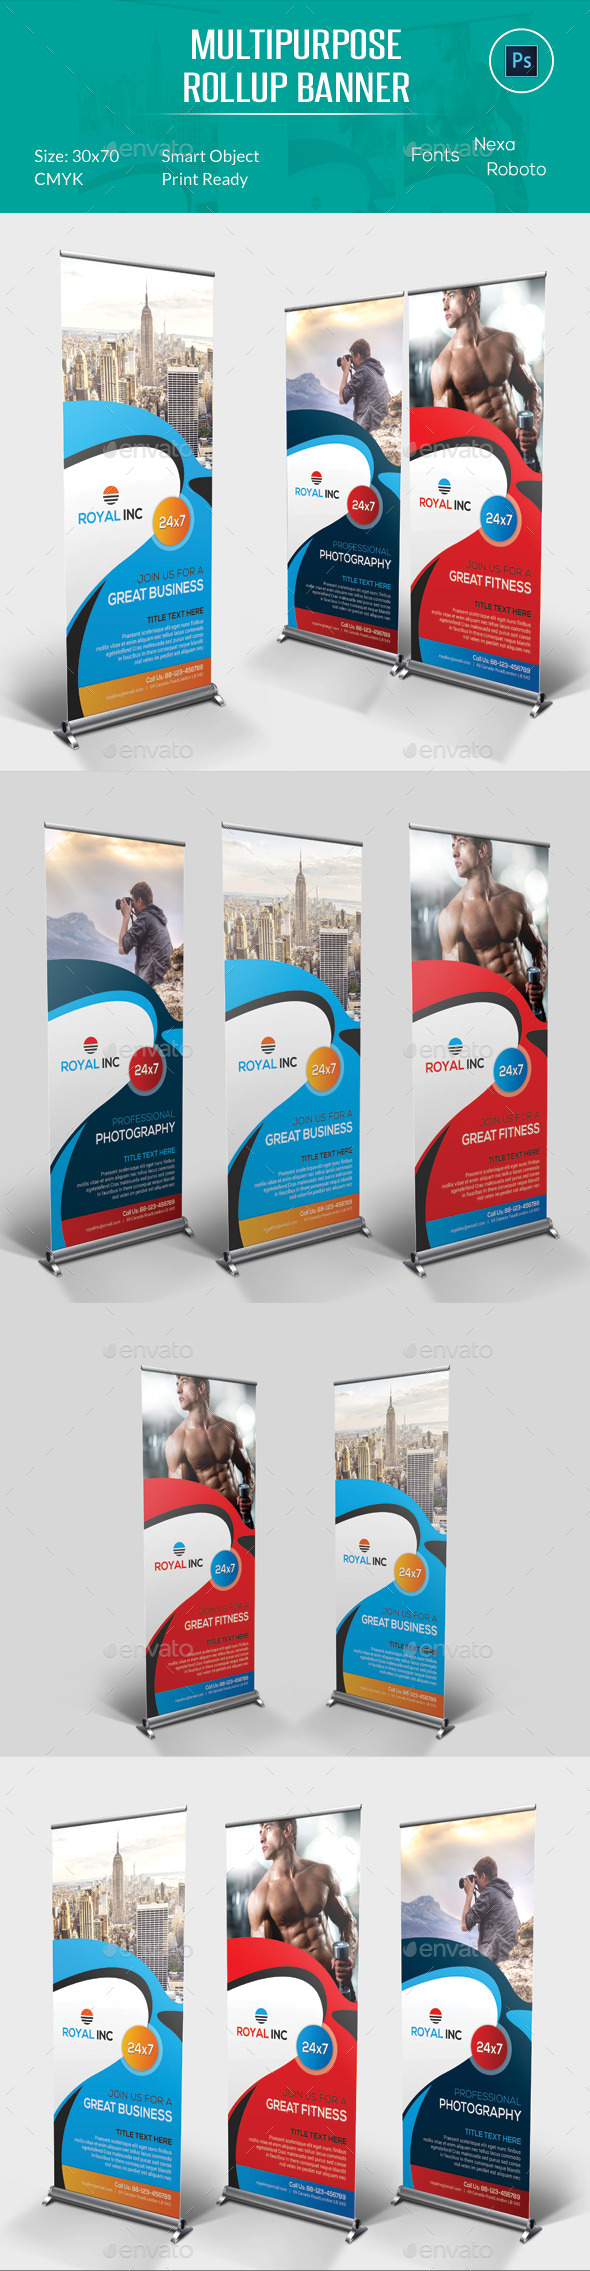 Multipurpose Rollup Banner - Signage Print Templates